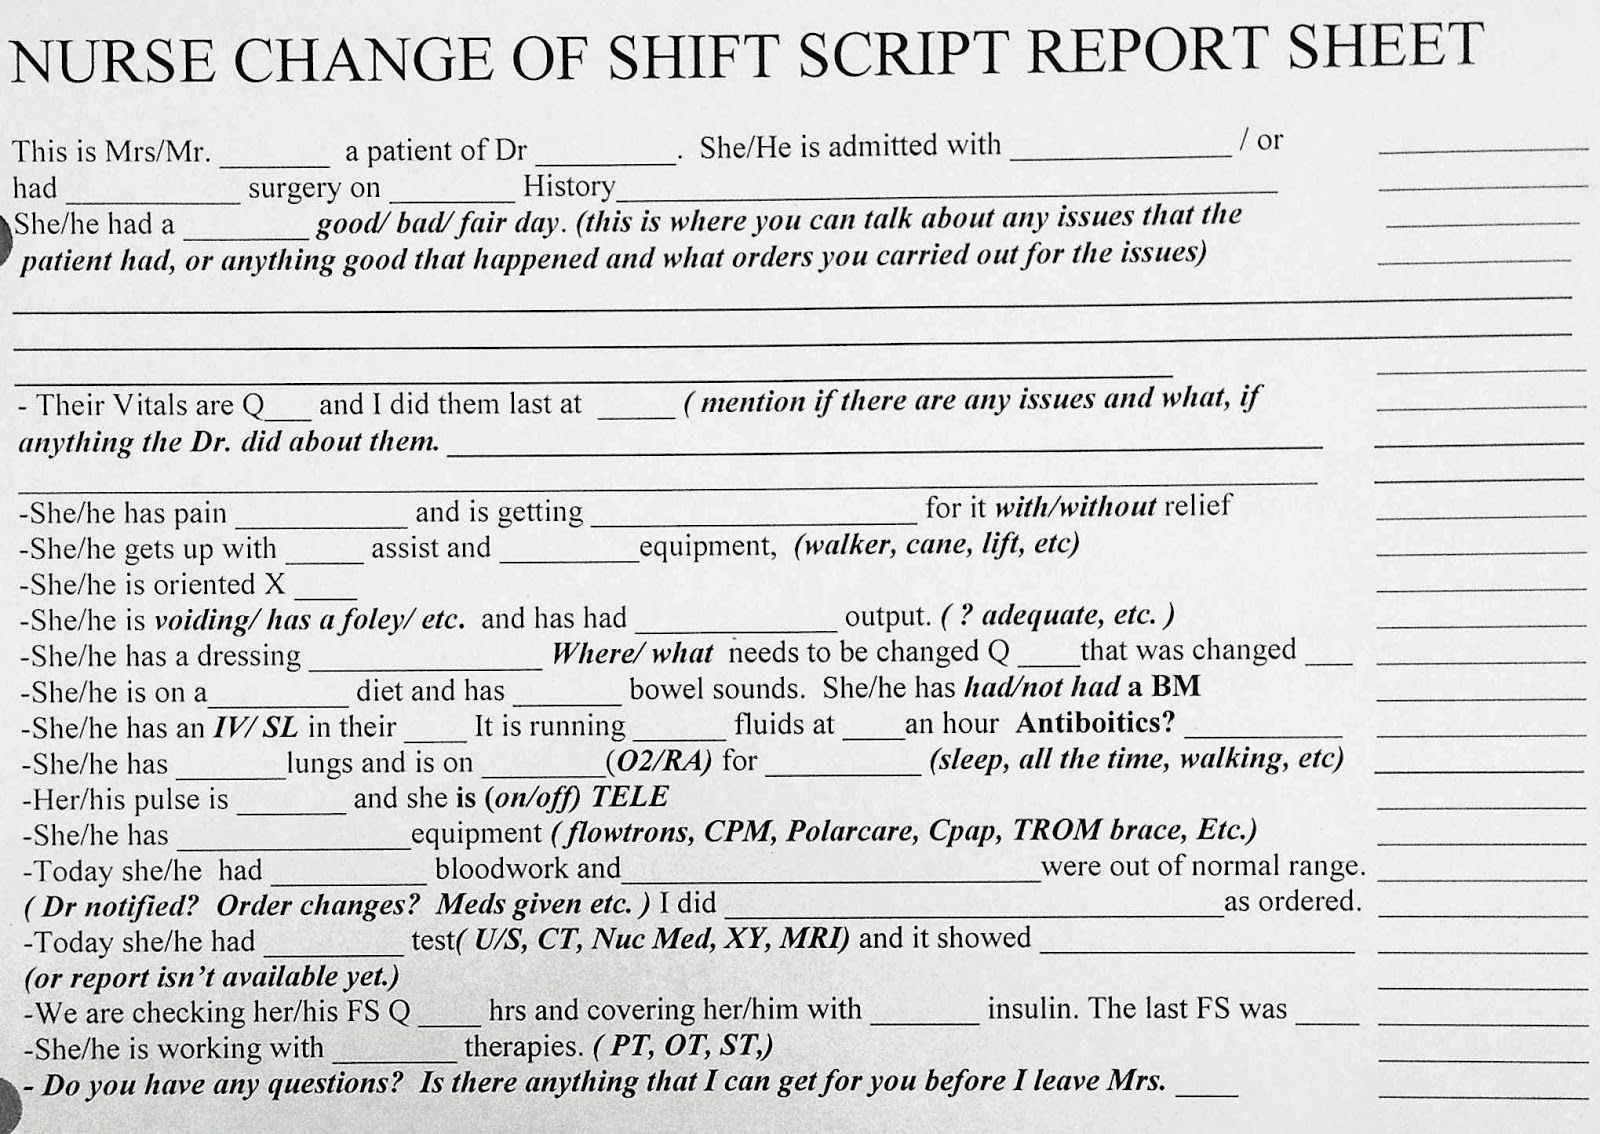 AWESOME New Grad Or Experienced Nurse Change Of Shift Bedside Report Sheet Script